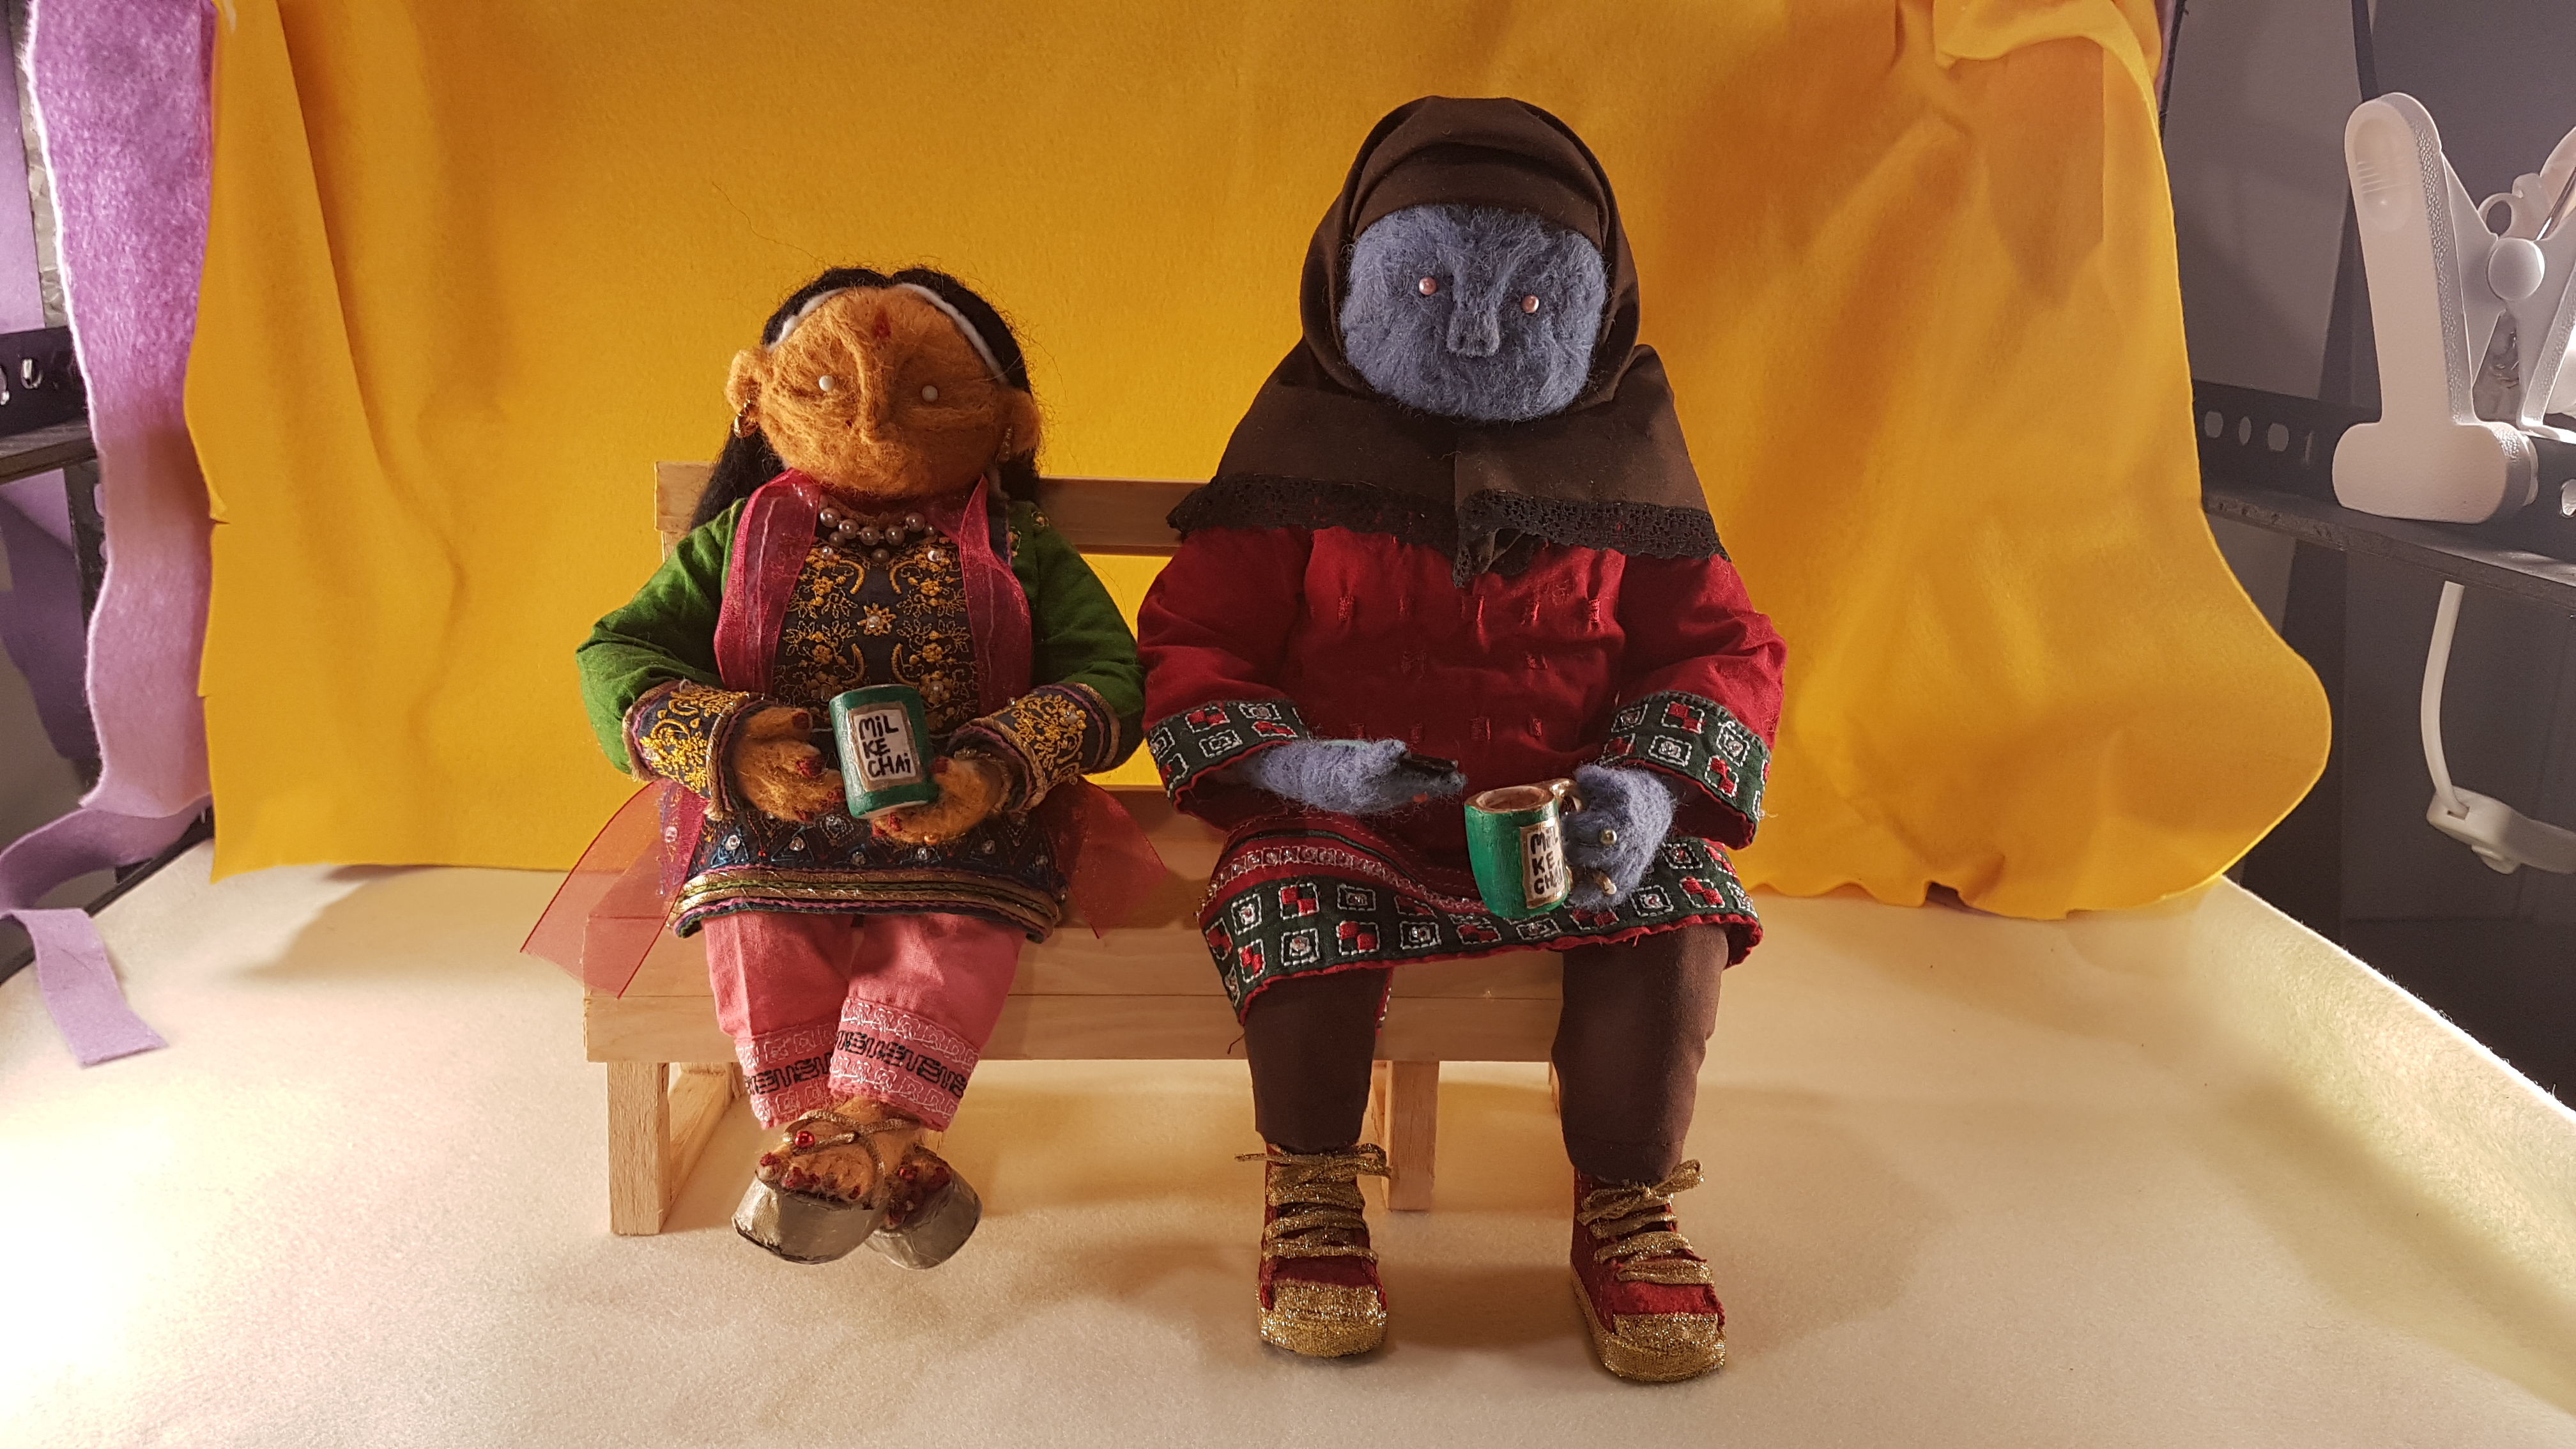 Puppets from Mil Ke Chai promo